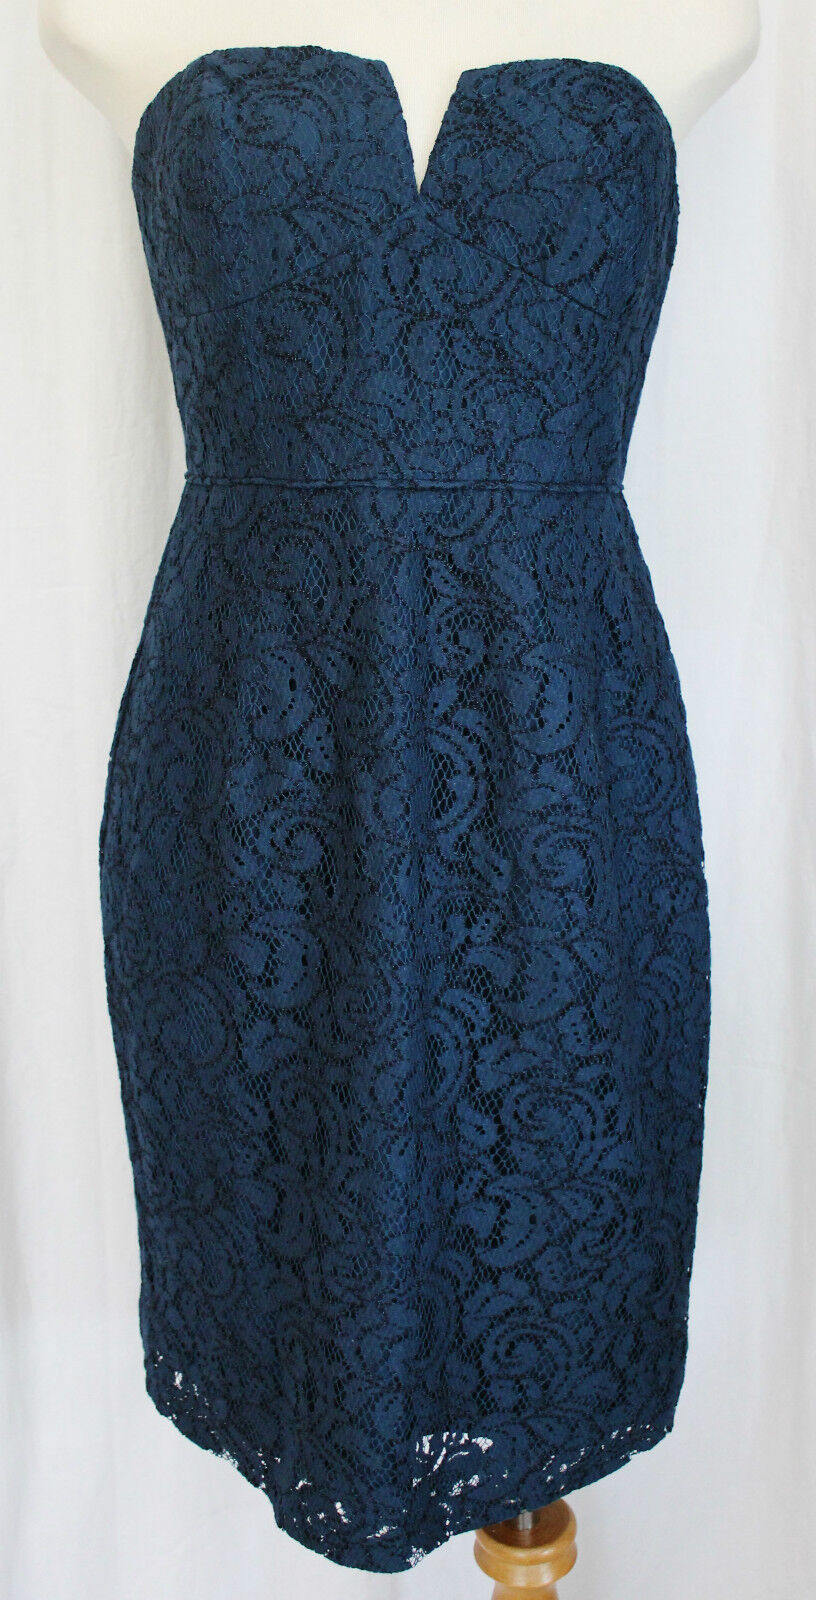 184bbd23942c J CREW CATHLEEN DRESS IN LEAVERS LACE ACROPOLIS blueE SIZE 2 NEW WITH TAGS